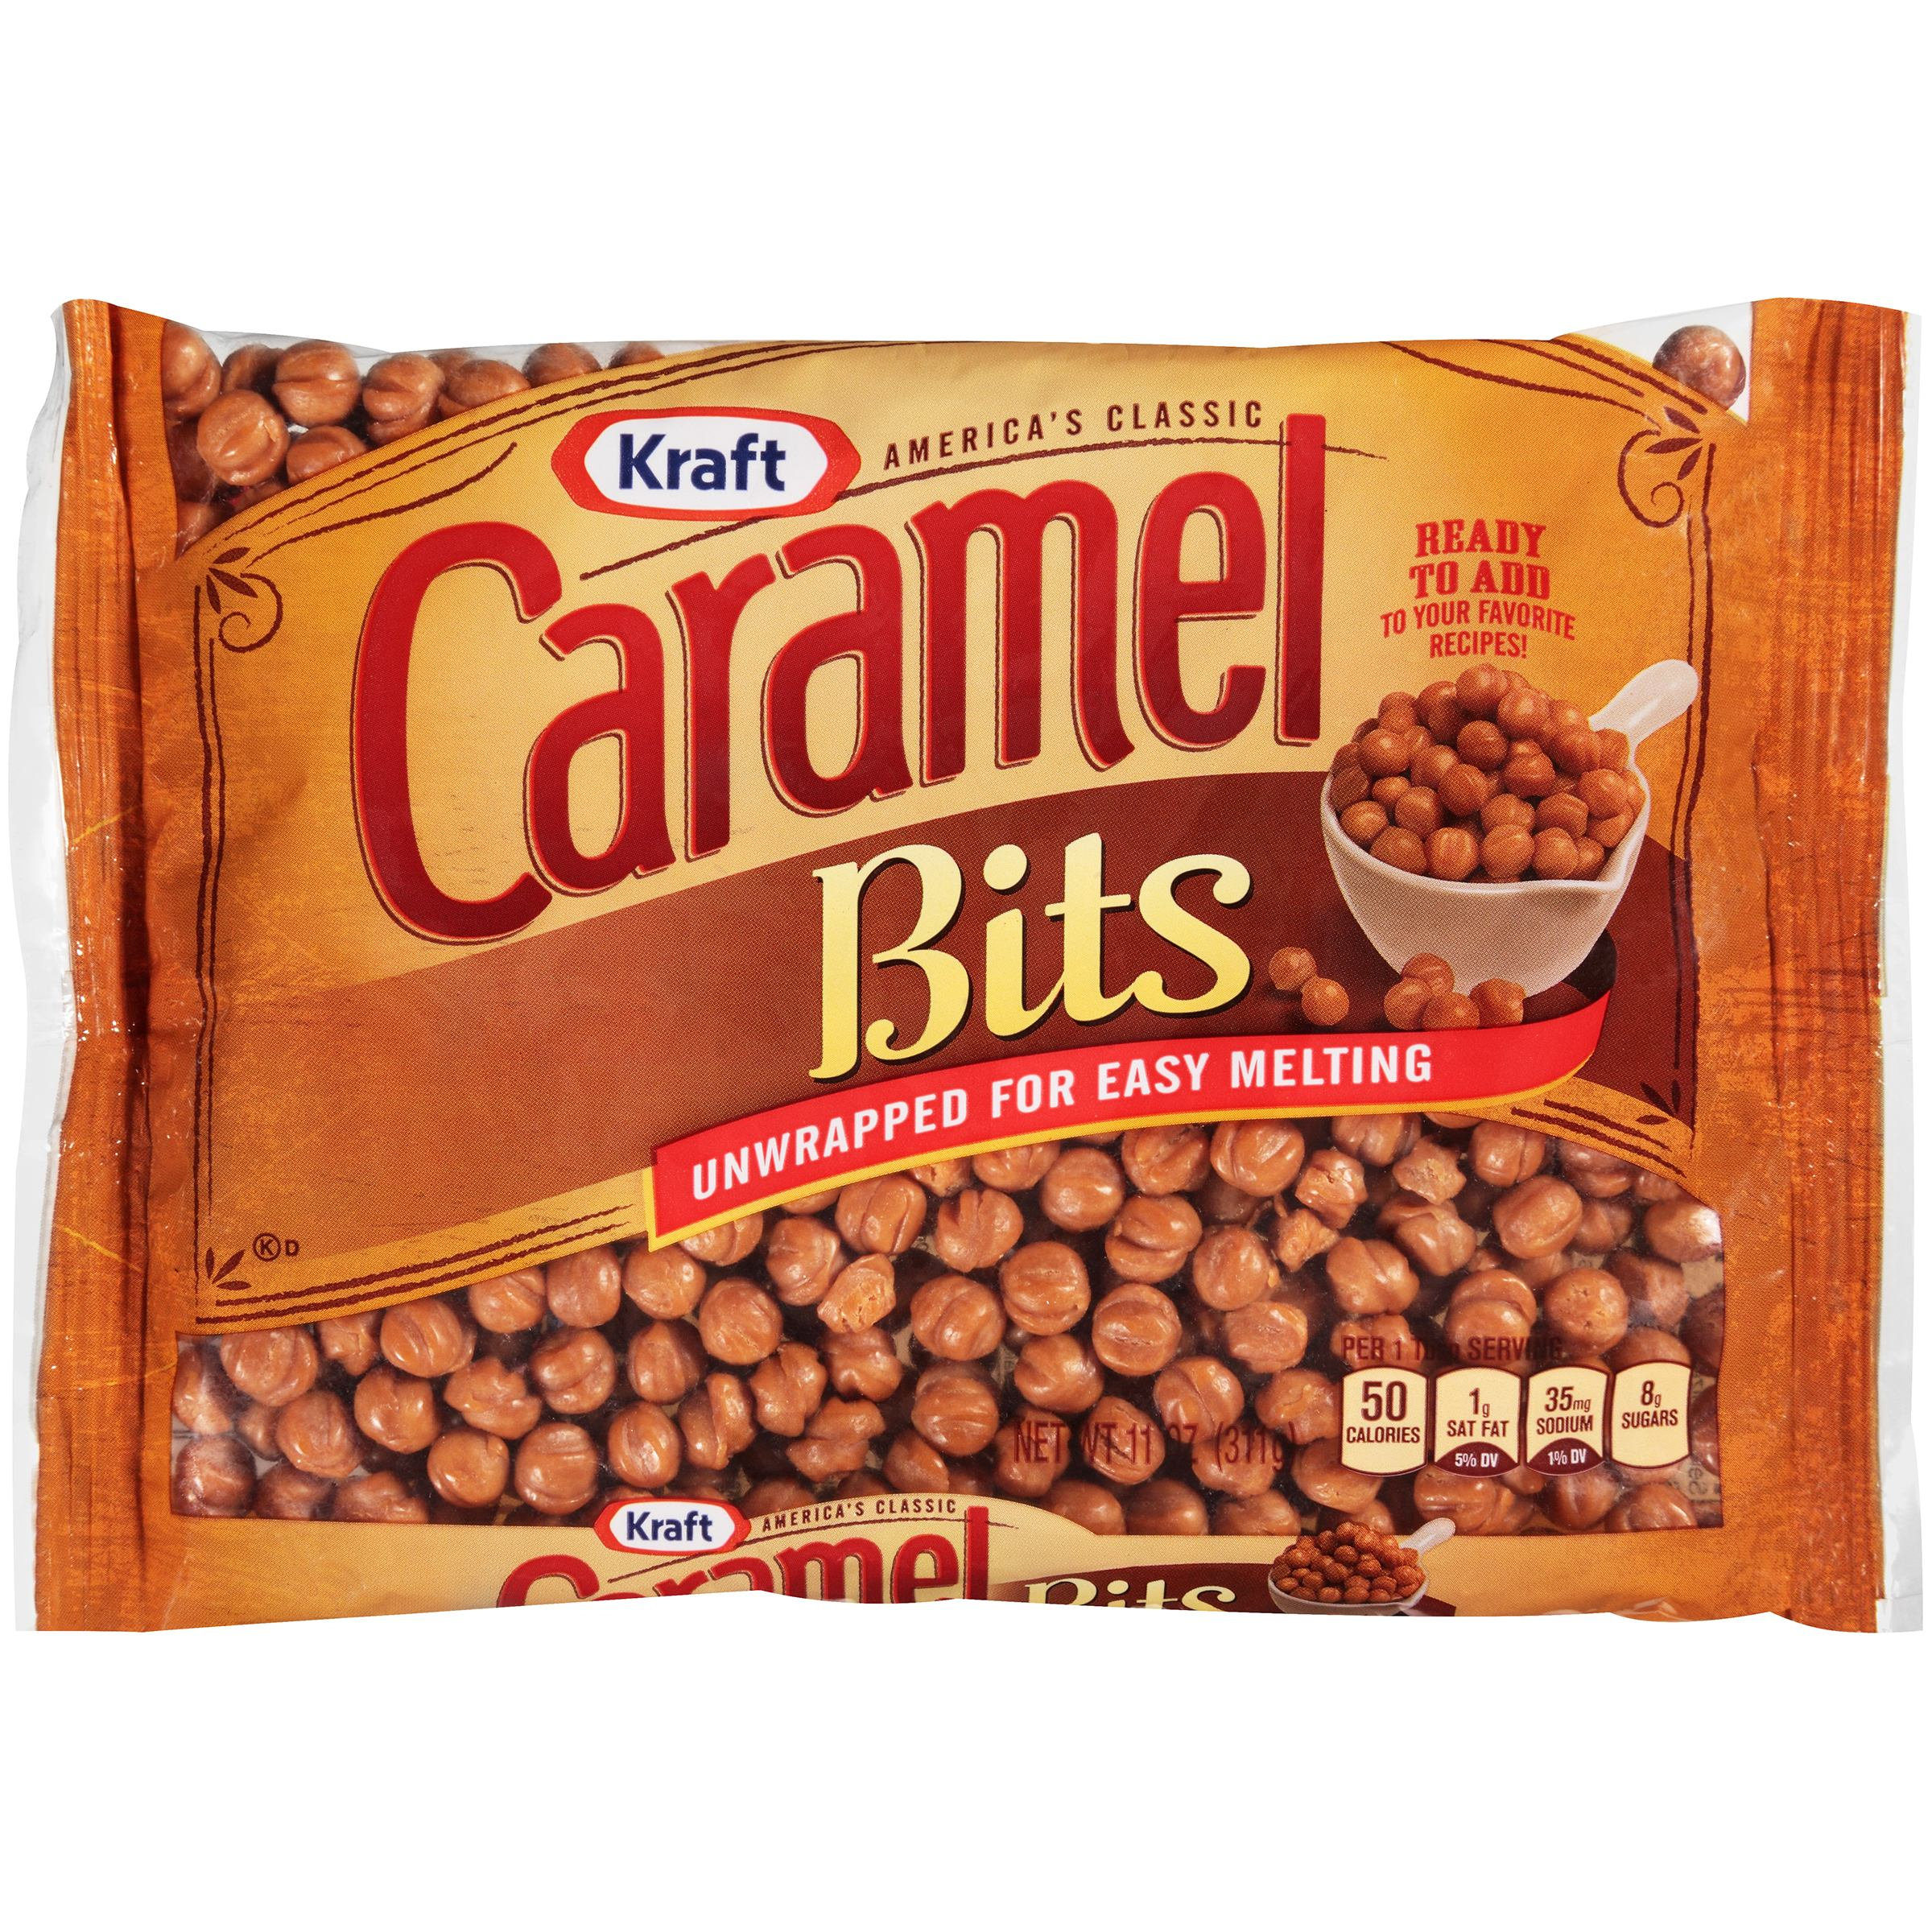 Kraft Caramel Bits 11 oz. Bag